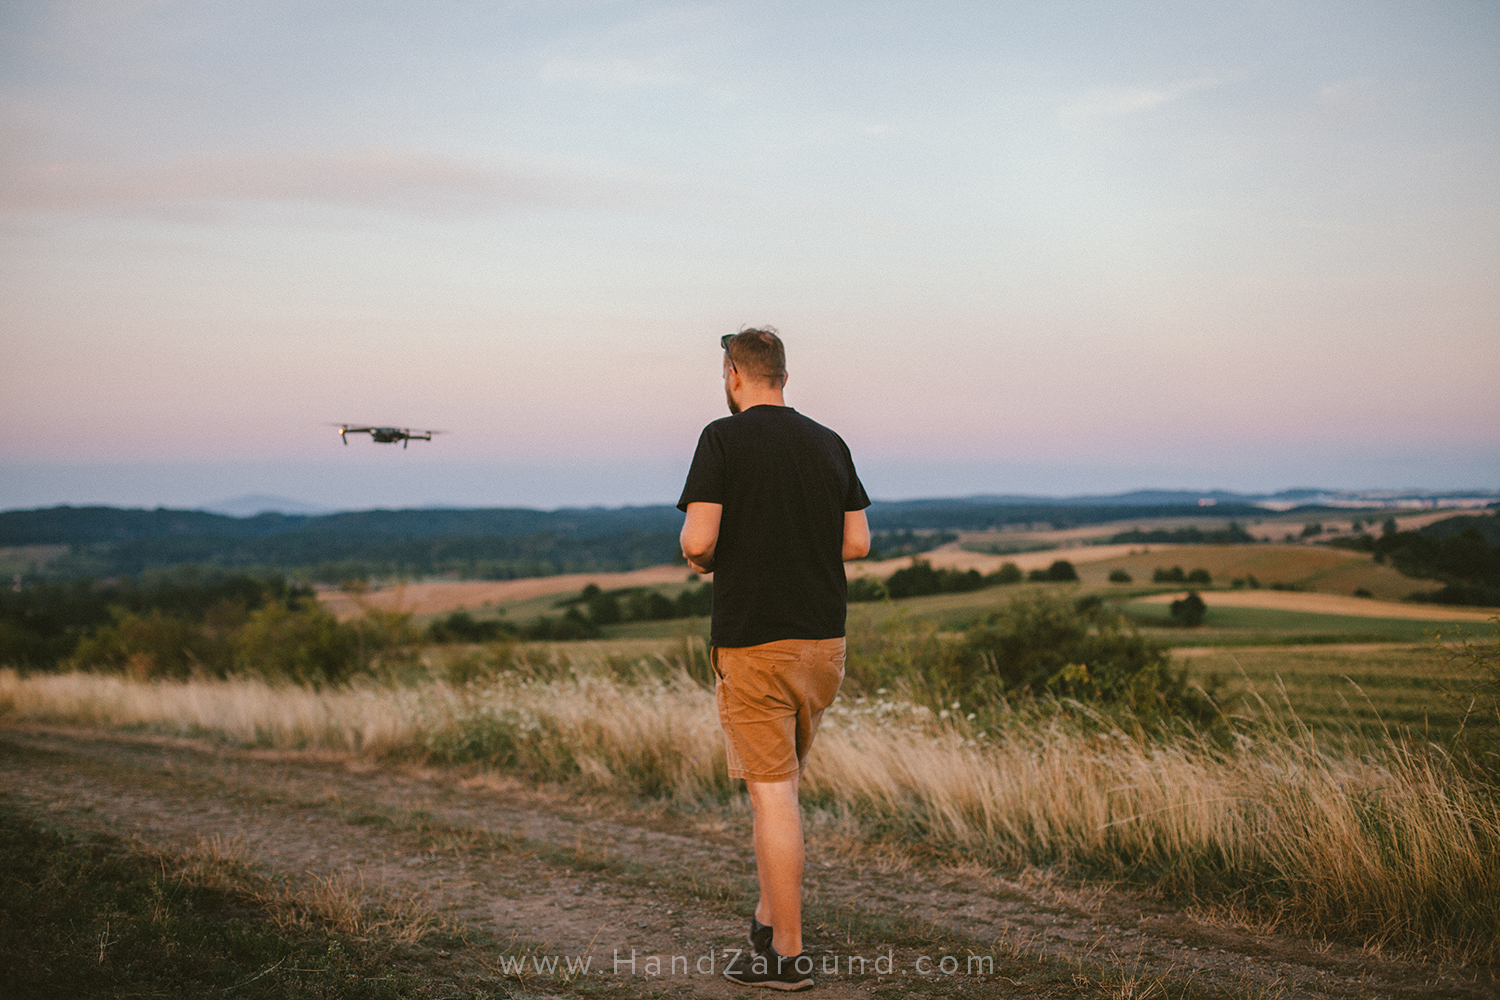 DJI Mavic Pro Drone - Zach taking the Mavic for it's maiden voyage through the hills of Hanna's hometown in Poland.